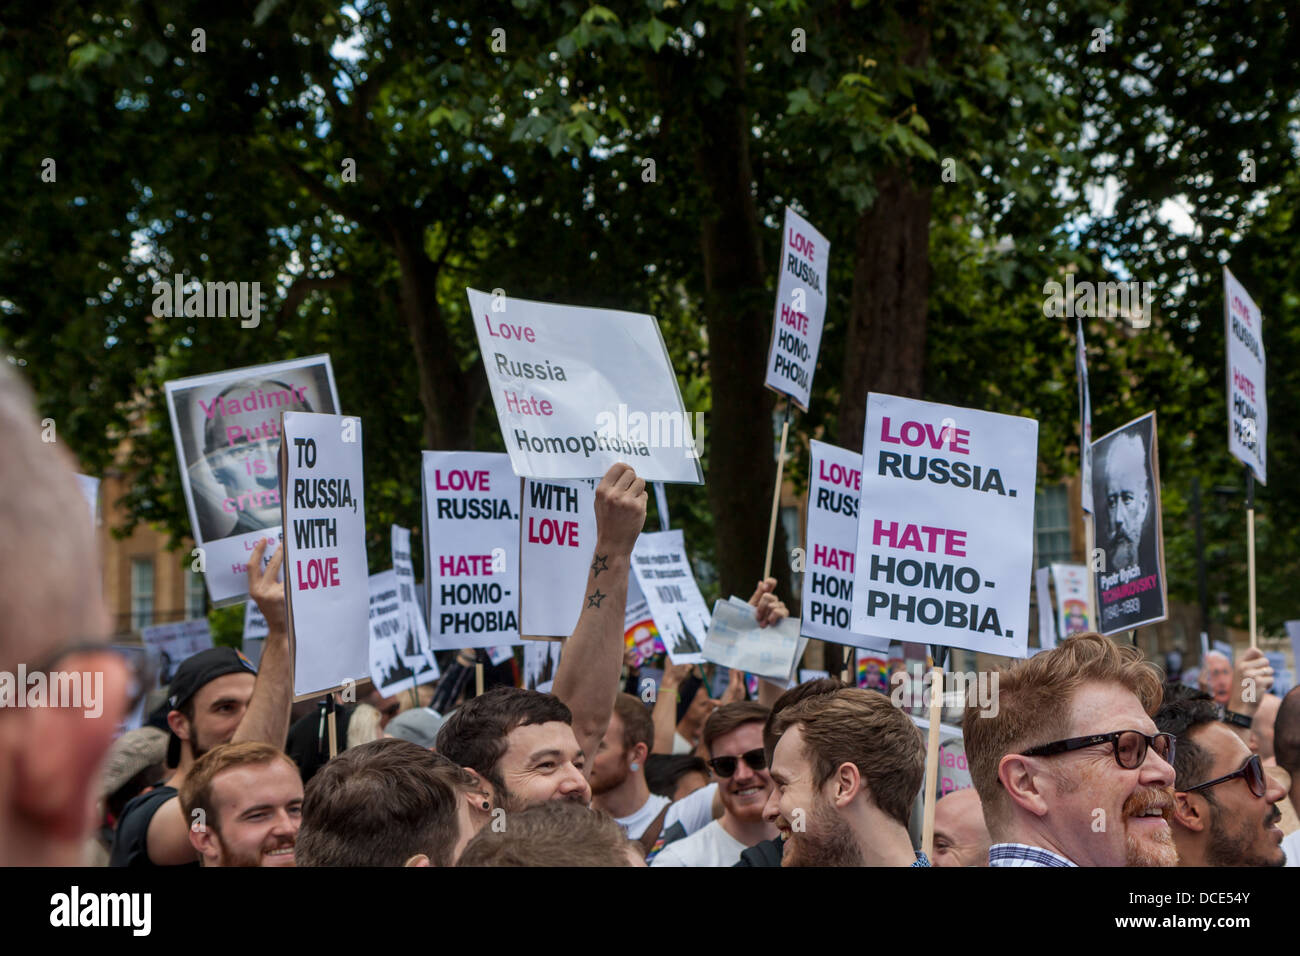 placards denouncing homophobic laws in Russia - Stock Image